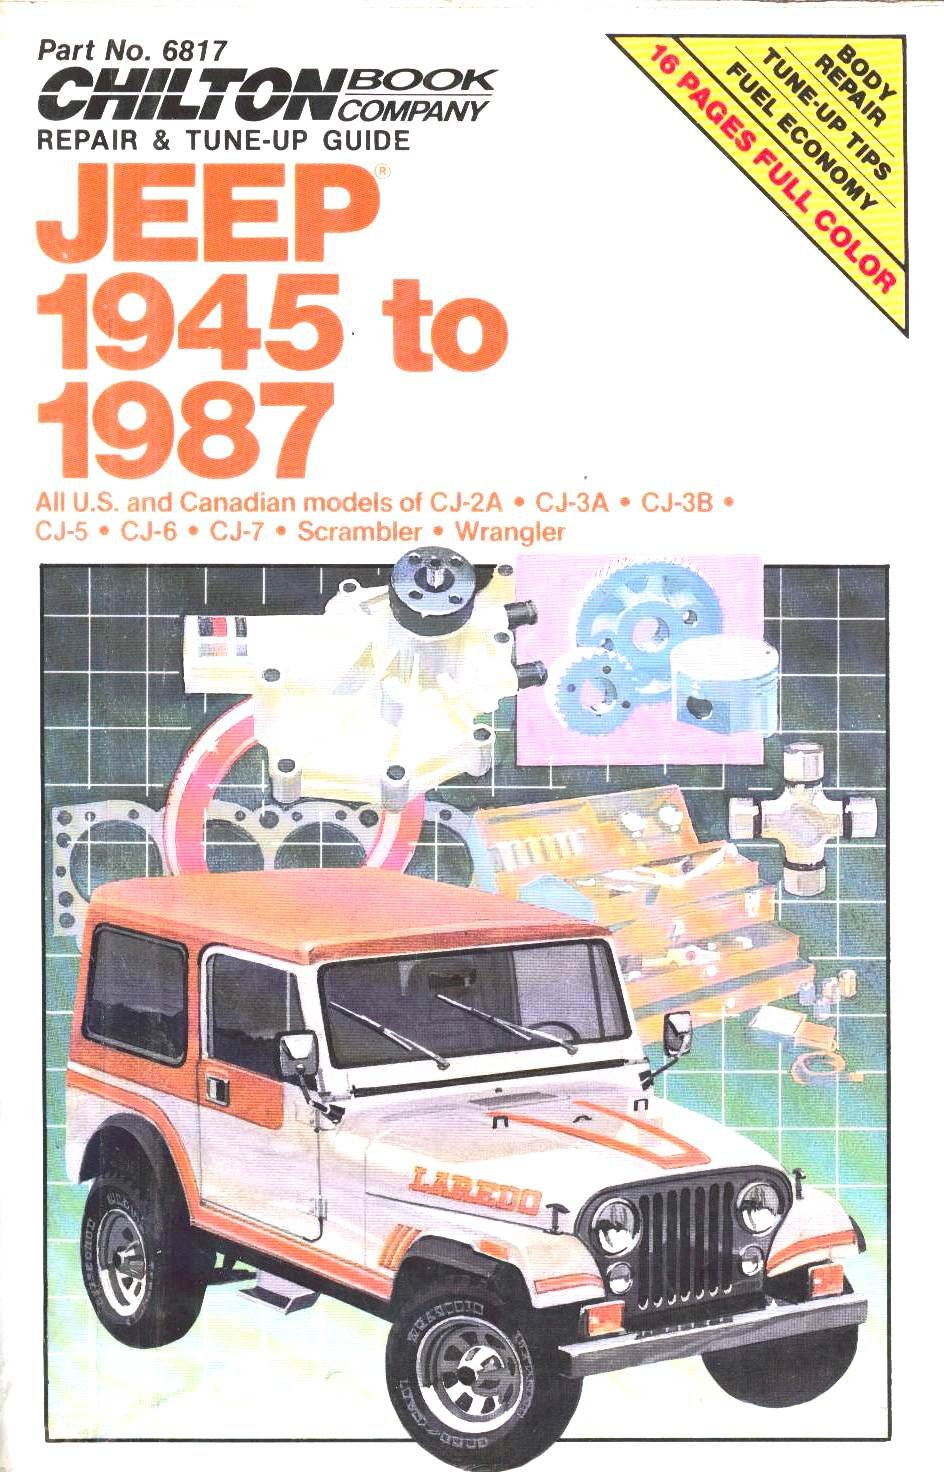 Chilton's Repair & Tune-Up Guide Jeep 1945 to 1987: All U.S. and Canadian  Models of Cj-2A, Cj-3A, Cj-3B, Cj-5, Cj-6, Cj-7, Scrambler, Wrangler  (Chilton's ...